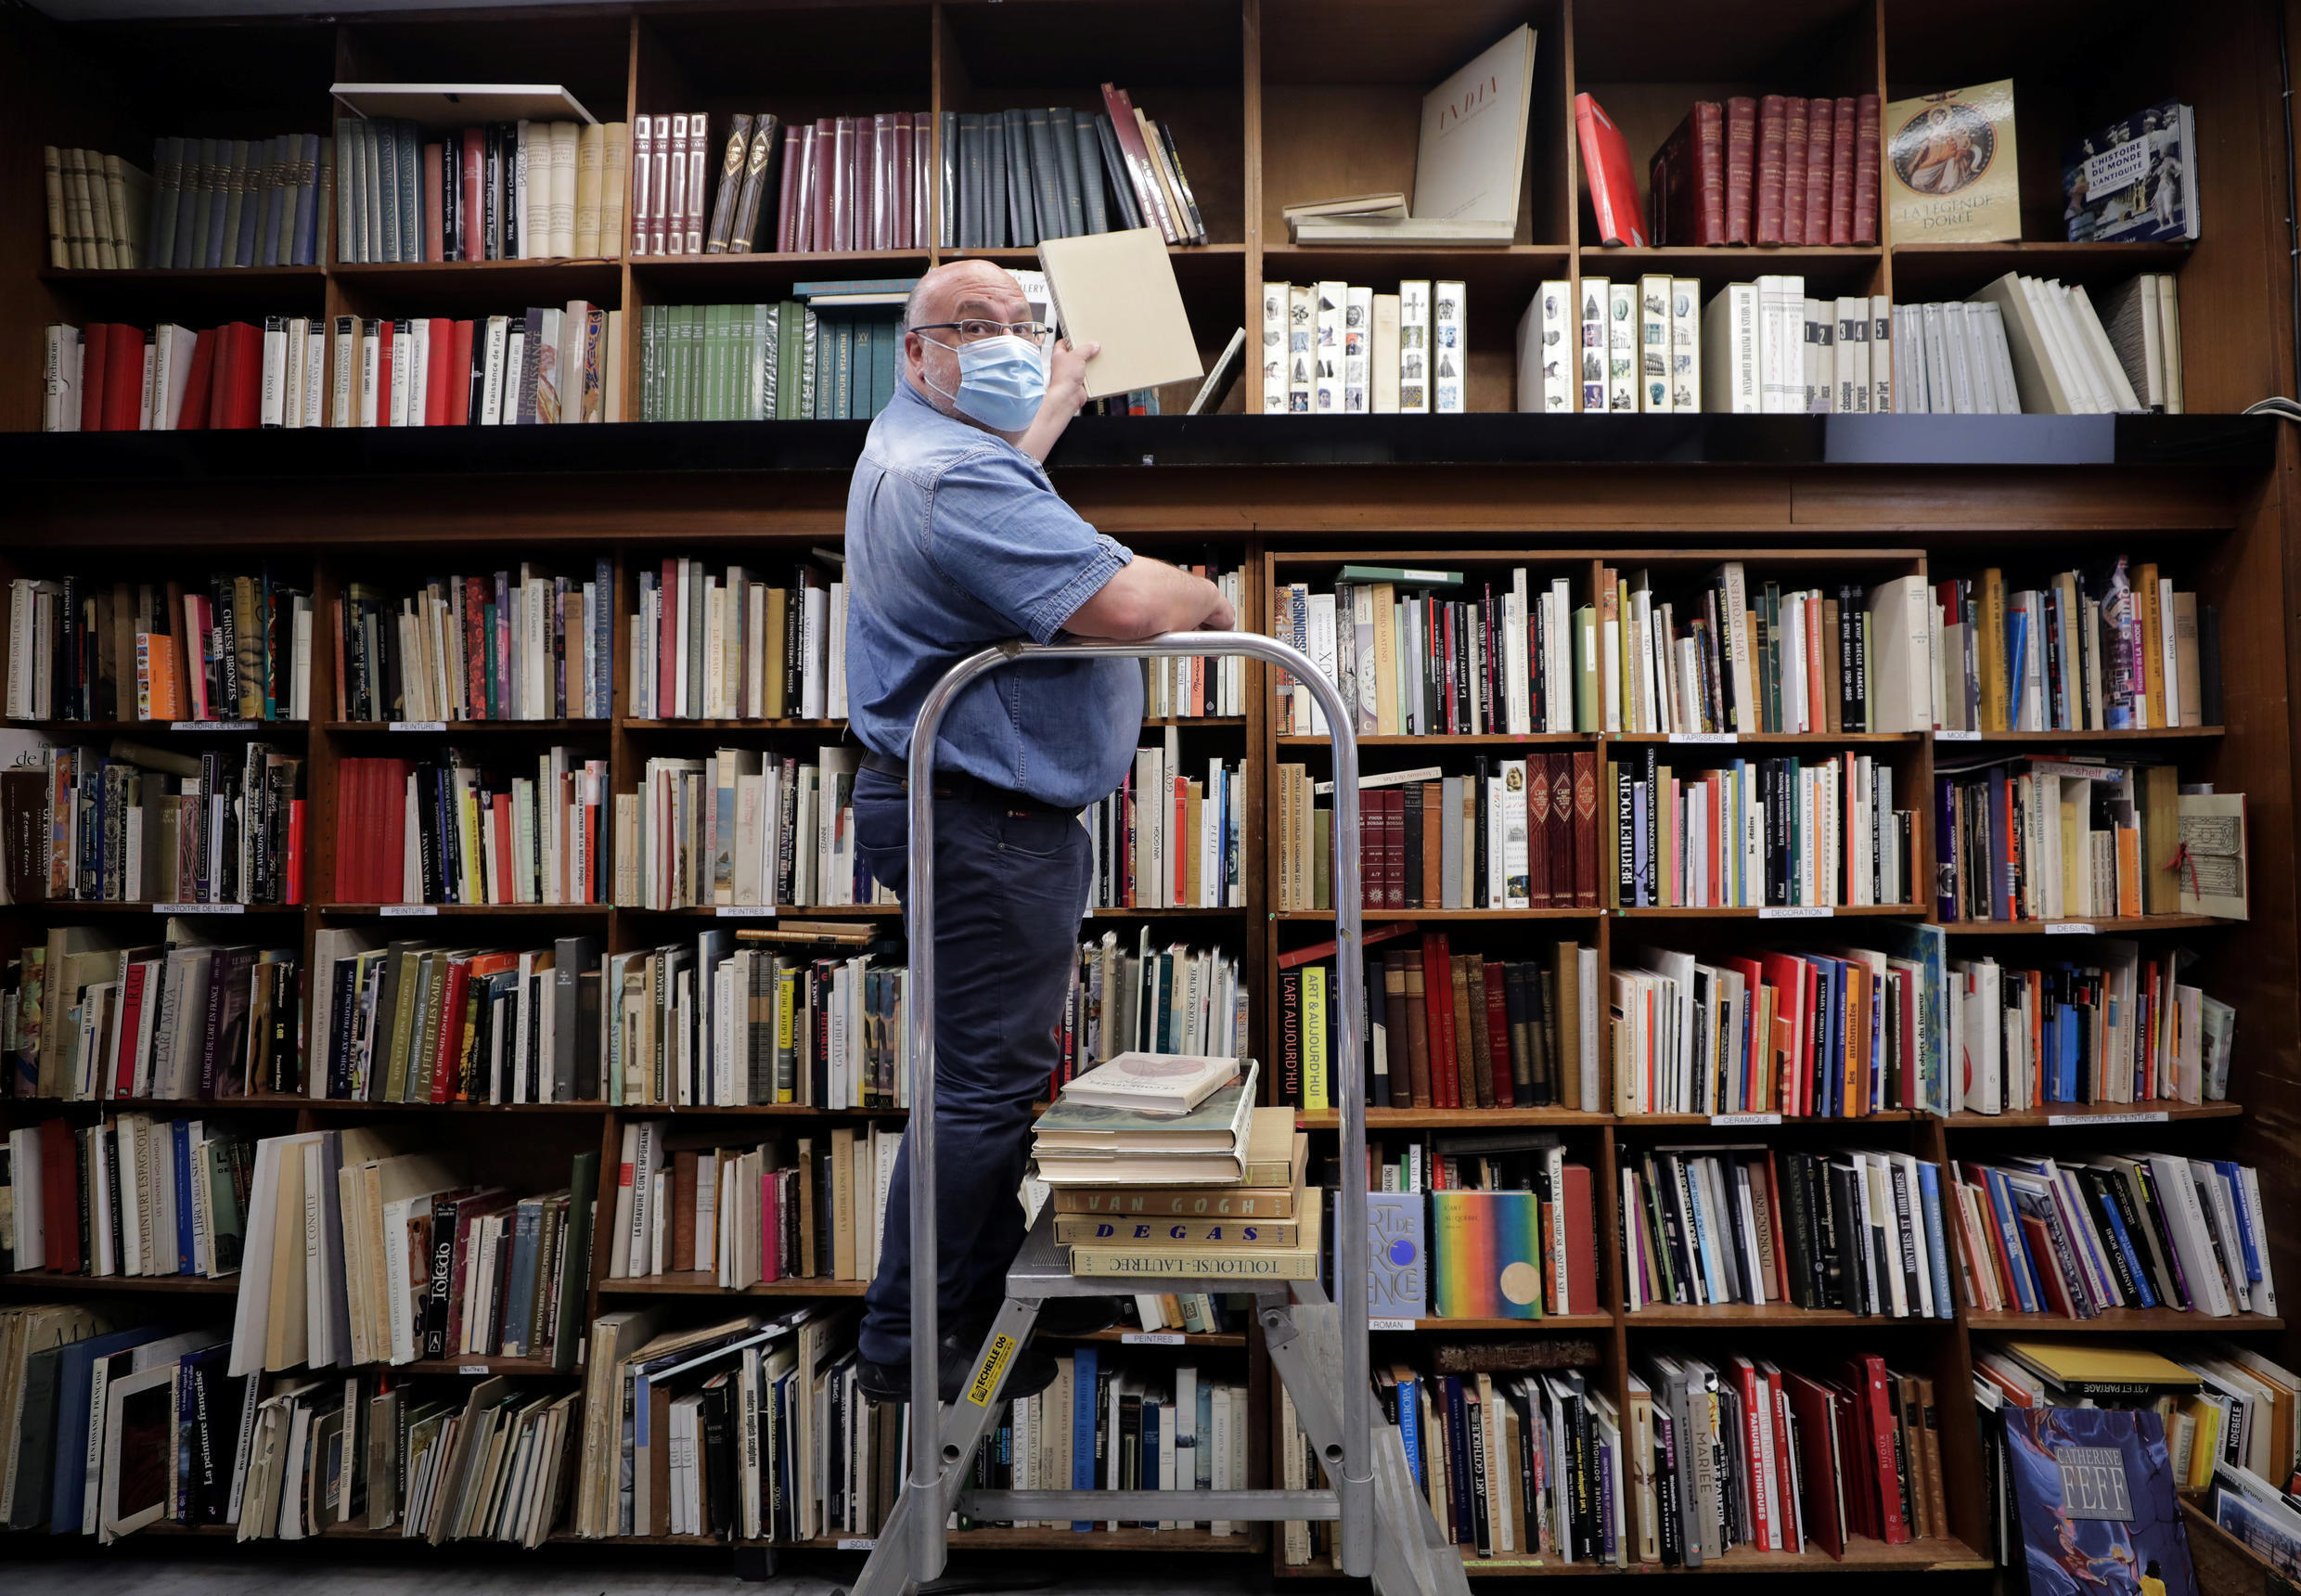 Bookseller Philippe Seyrat, wearing a protective face mask, arranges books at La Sorbonne bookshop in Nice on May 13, 2020.